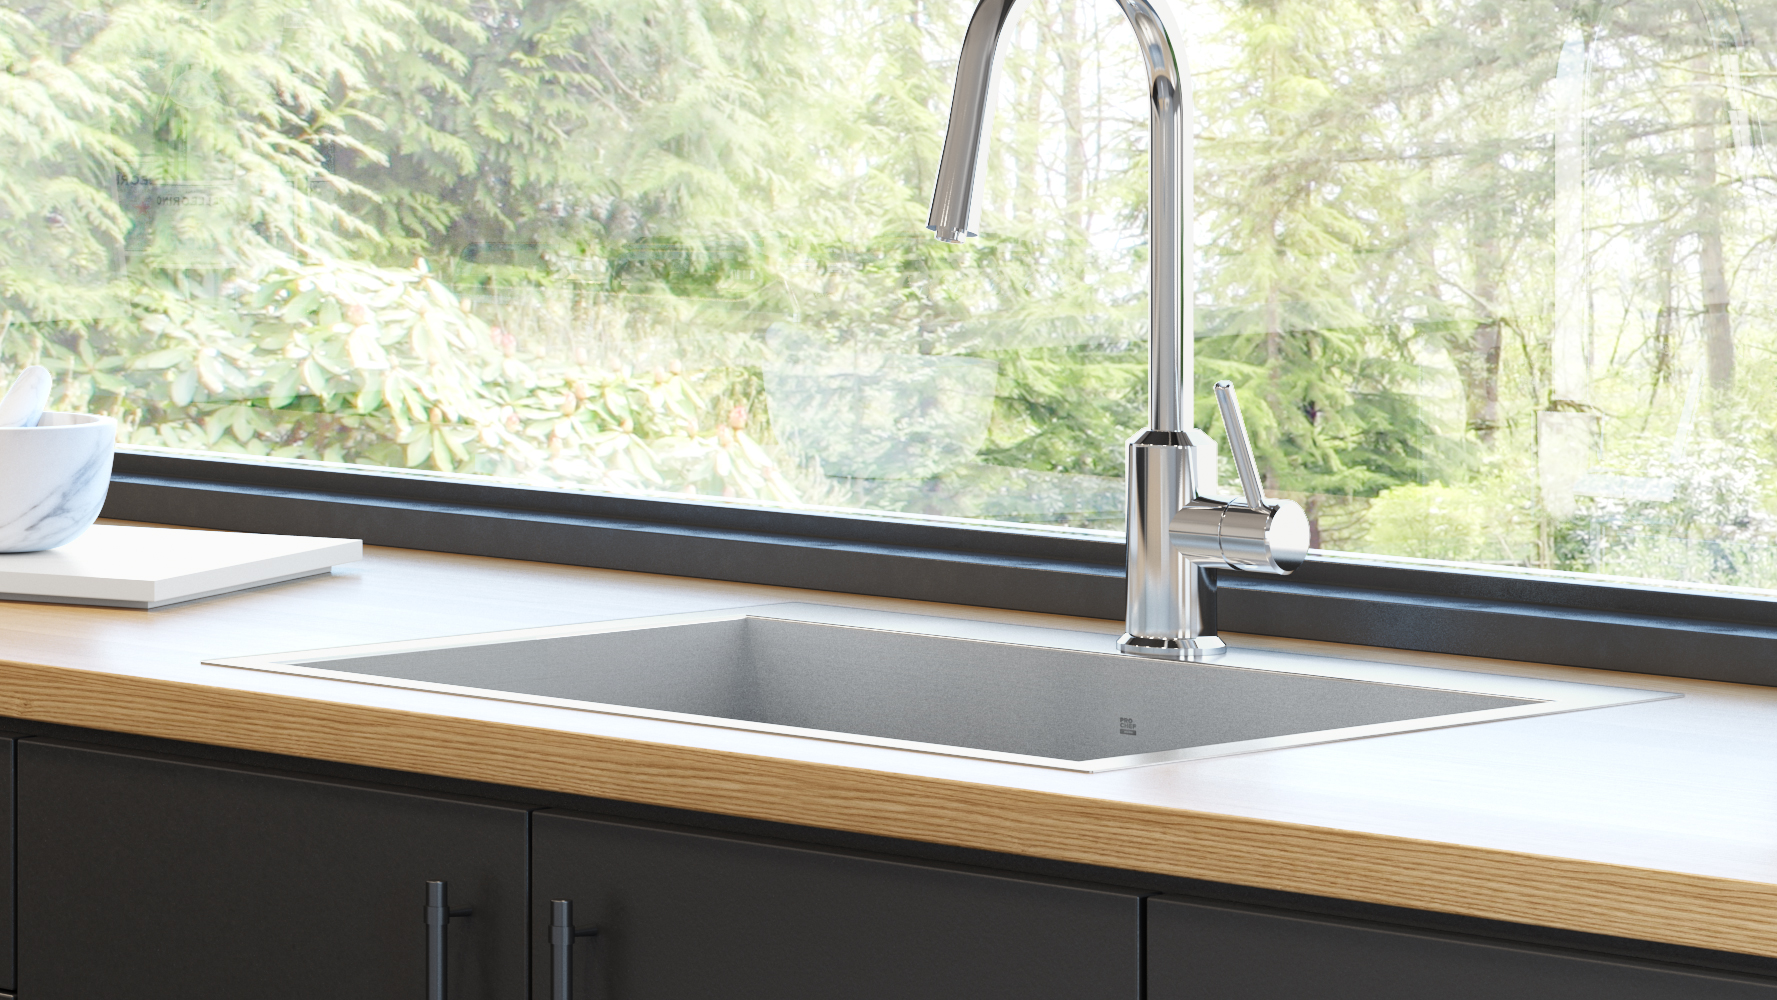 Stainless steel kitchen sinks and fireclay sinks - Prochef